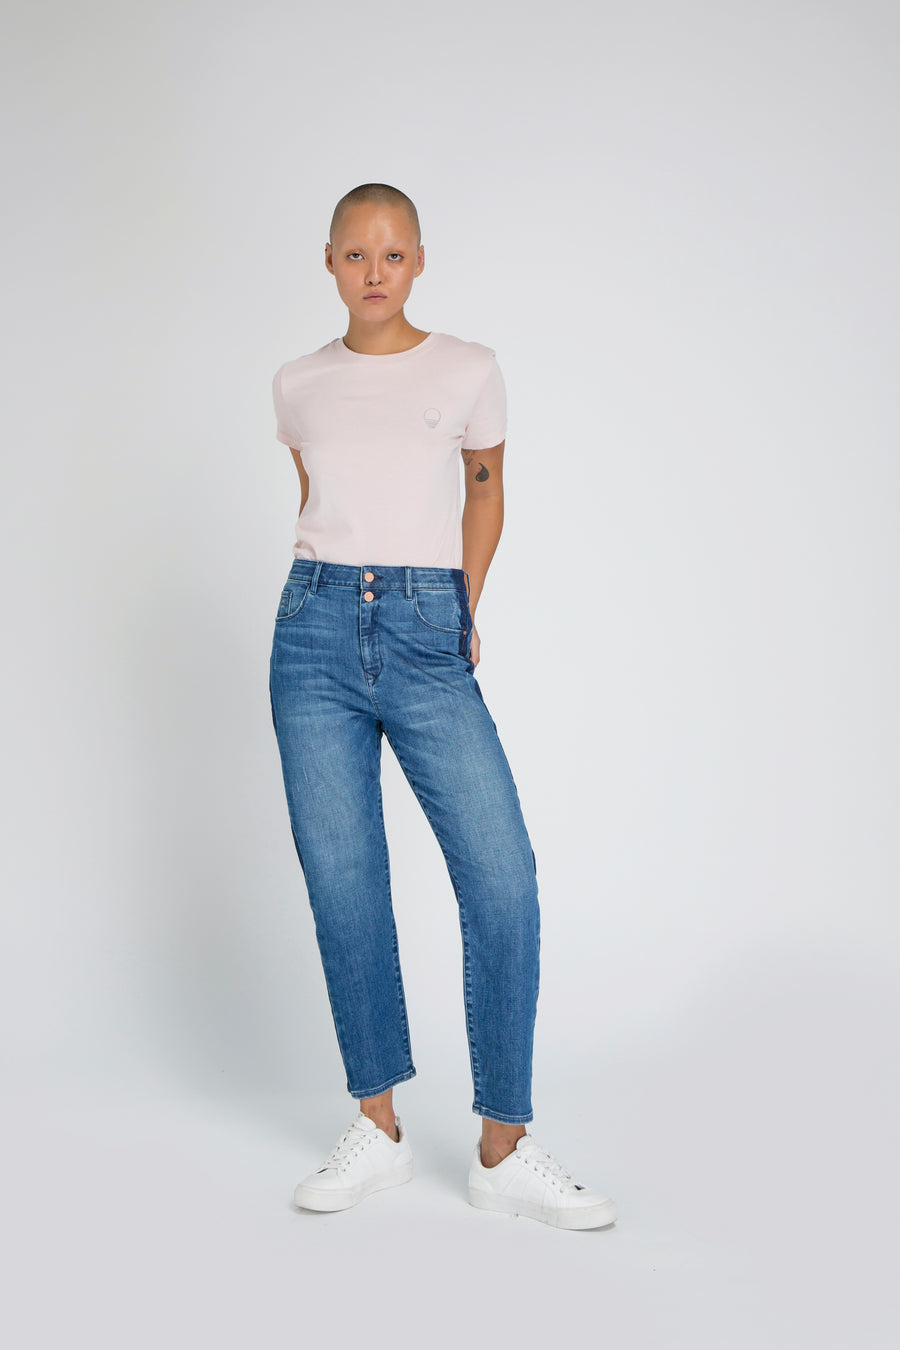 STARDUST - O-Shape, Organic Lightweight Denim, Gallonstripe